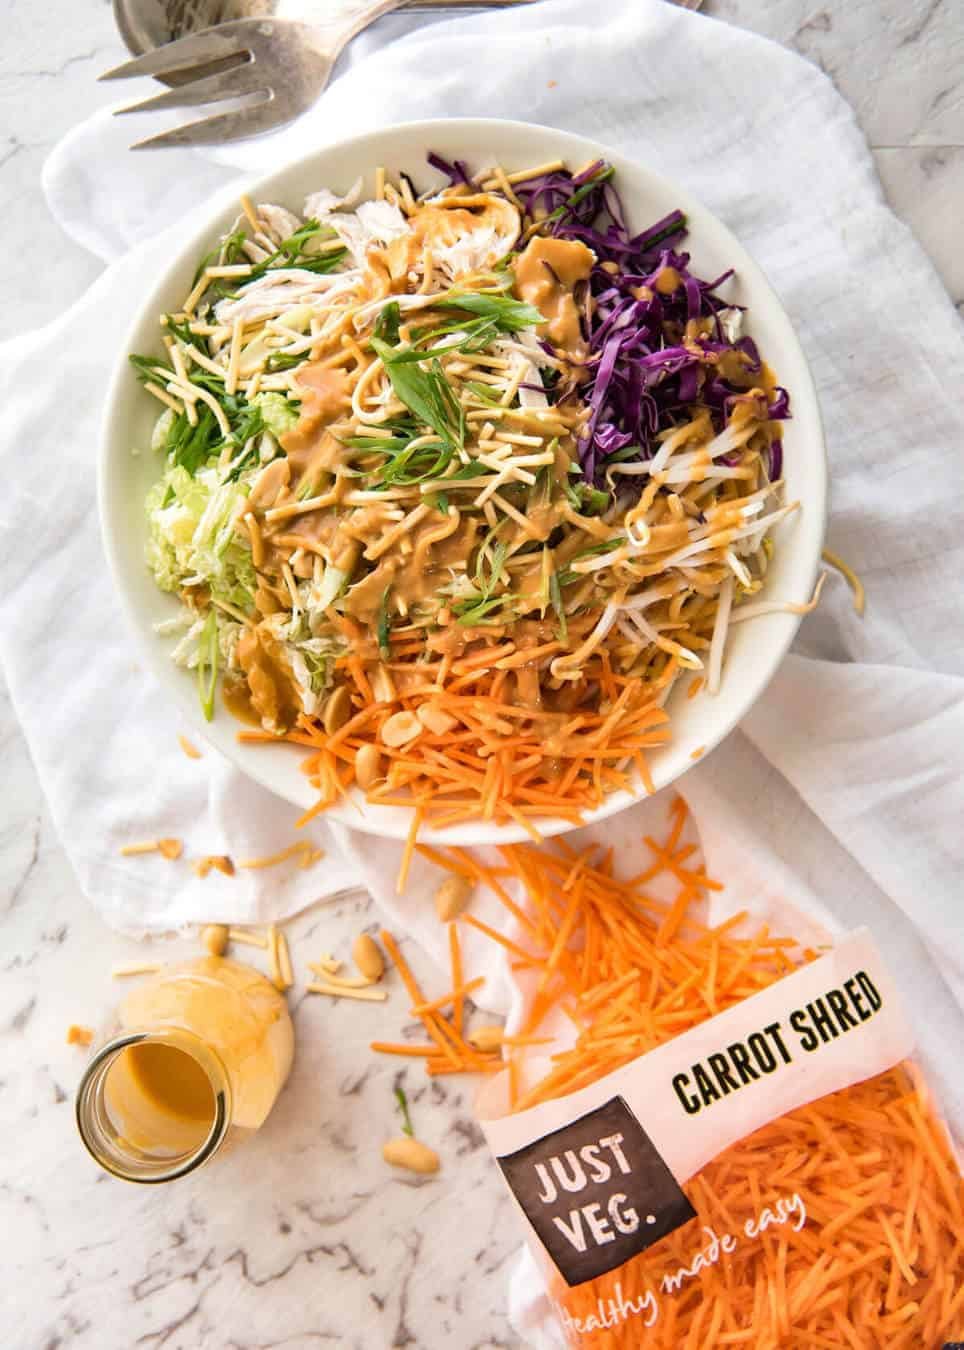 Chinese chicken salad with asian peanut salad dressing recipetin eats chinese chicken salad with asian peanut salad dressing made with cabbage shredded chicken forumfinder Choice Image